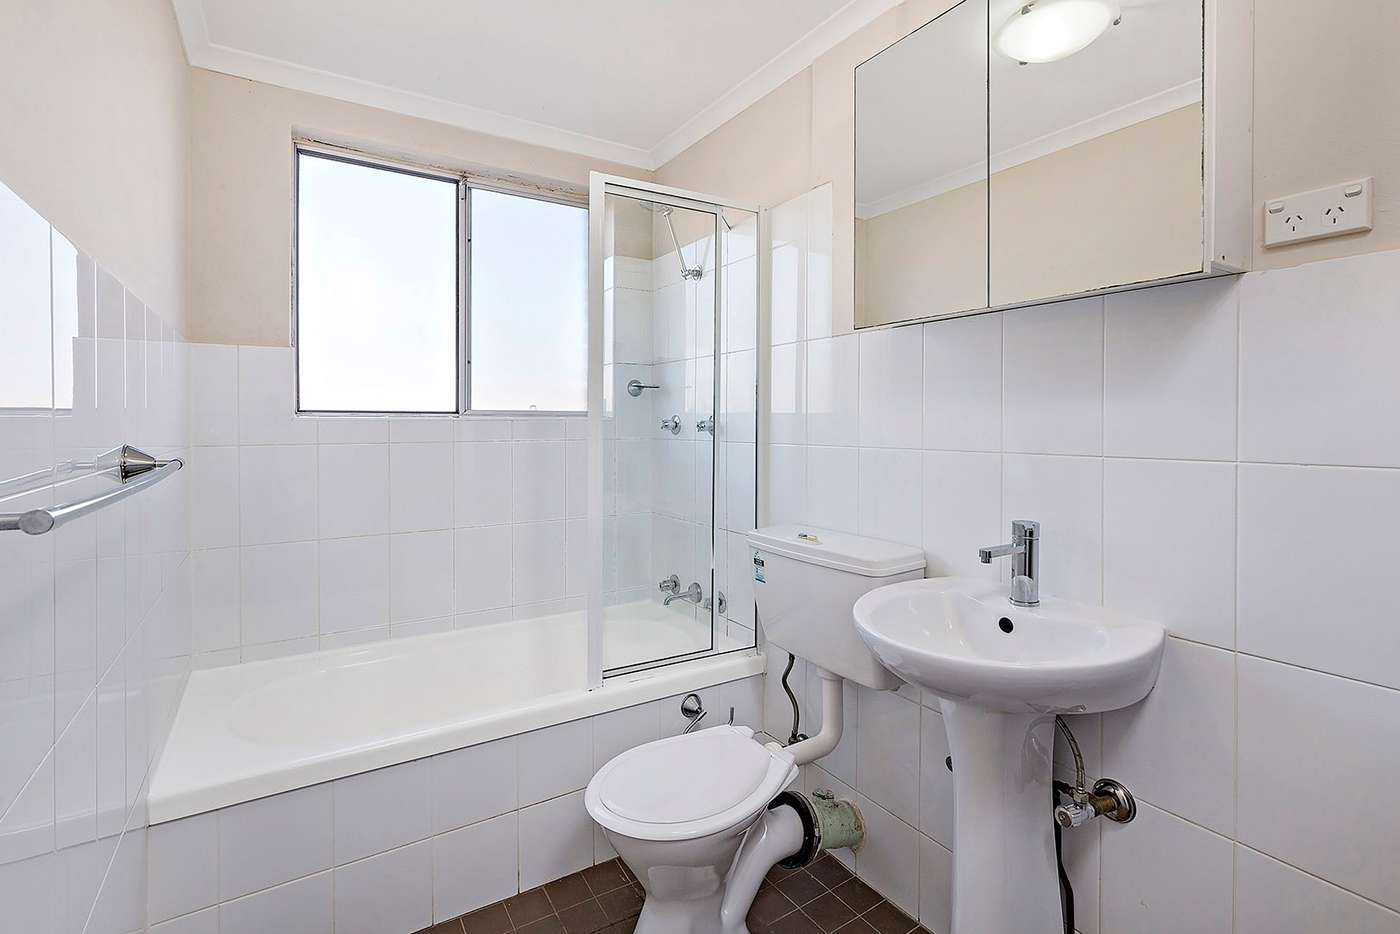 Sixth view of Homely apartment listing, 6/88 Burfitt Street, Leichhardt NSW 2040